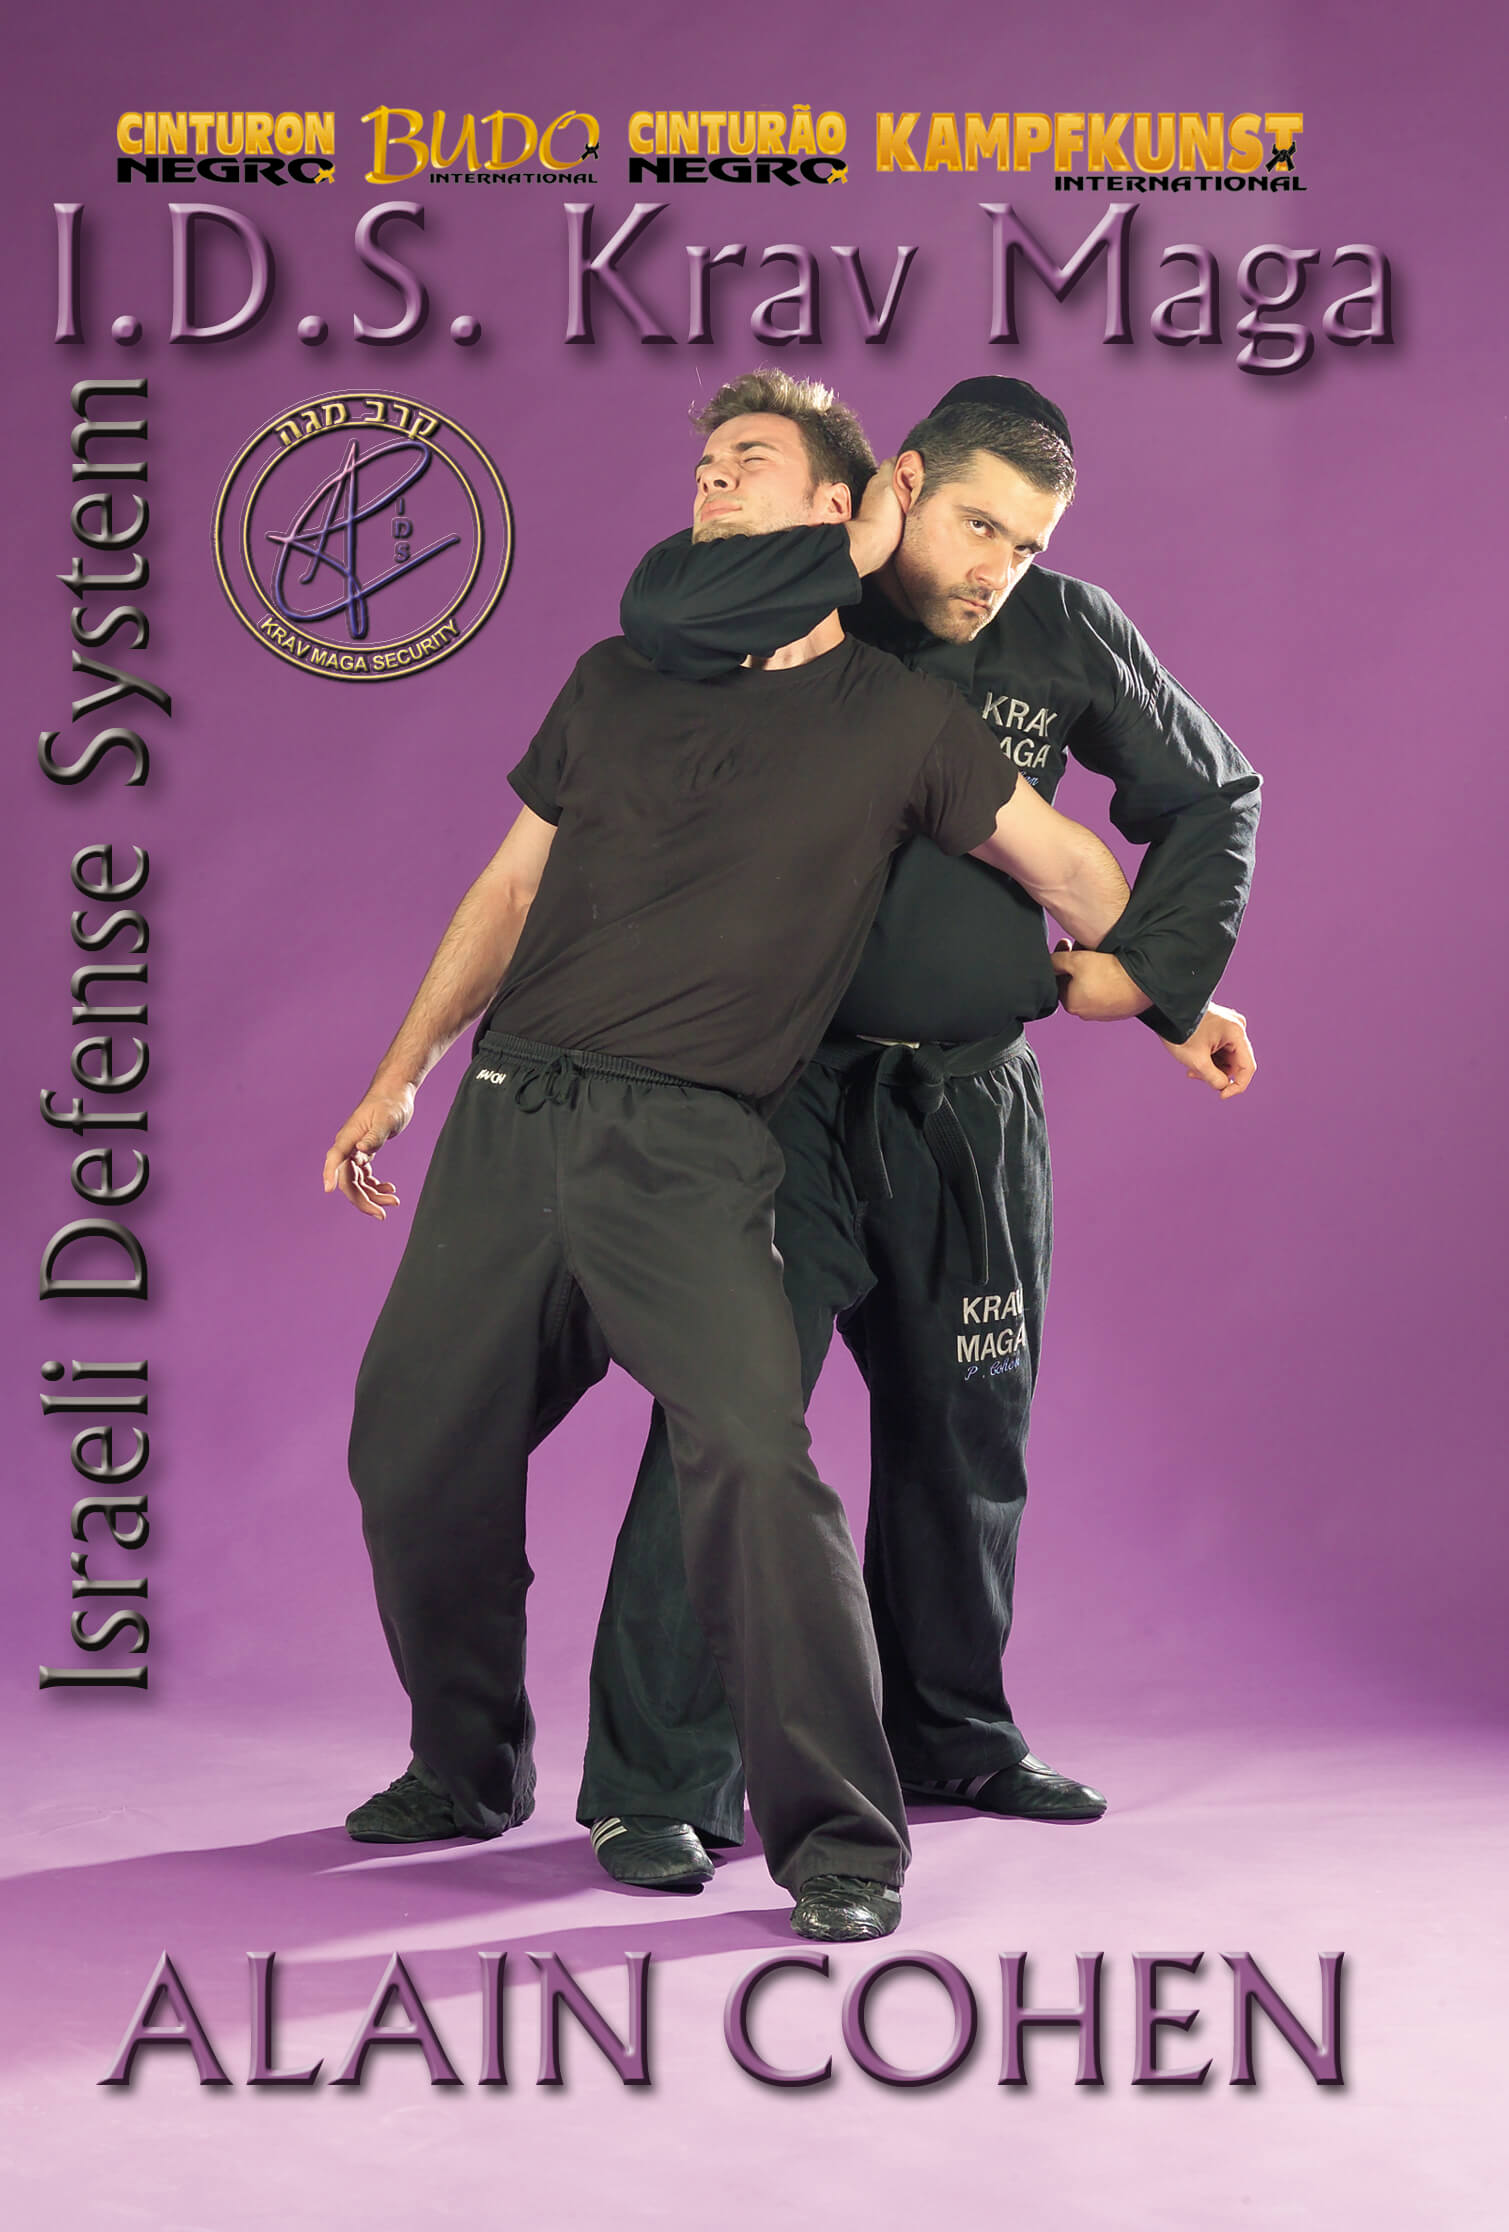 KRAV MAGA BEST TECHNICS